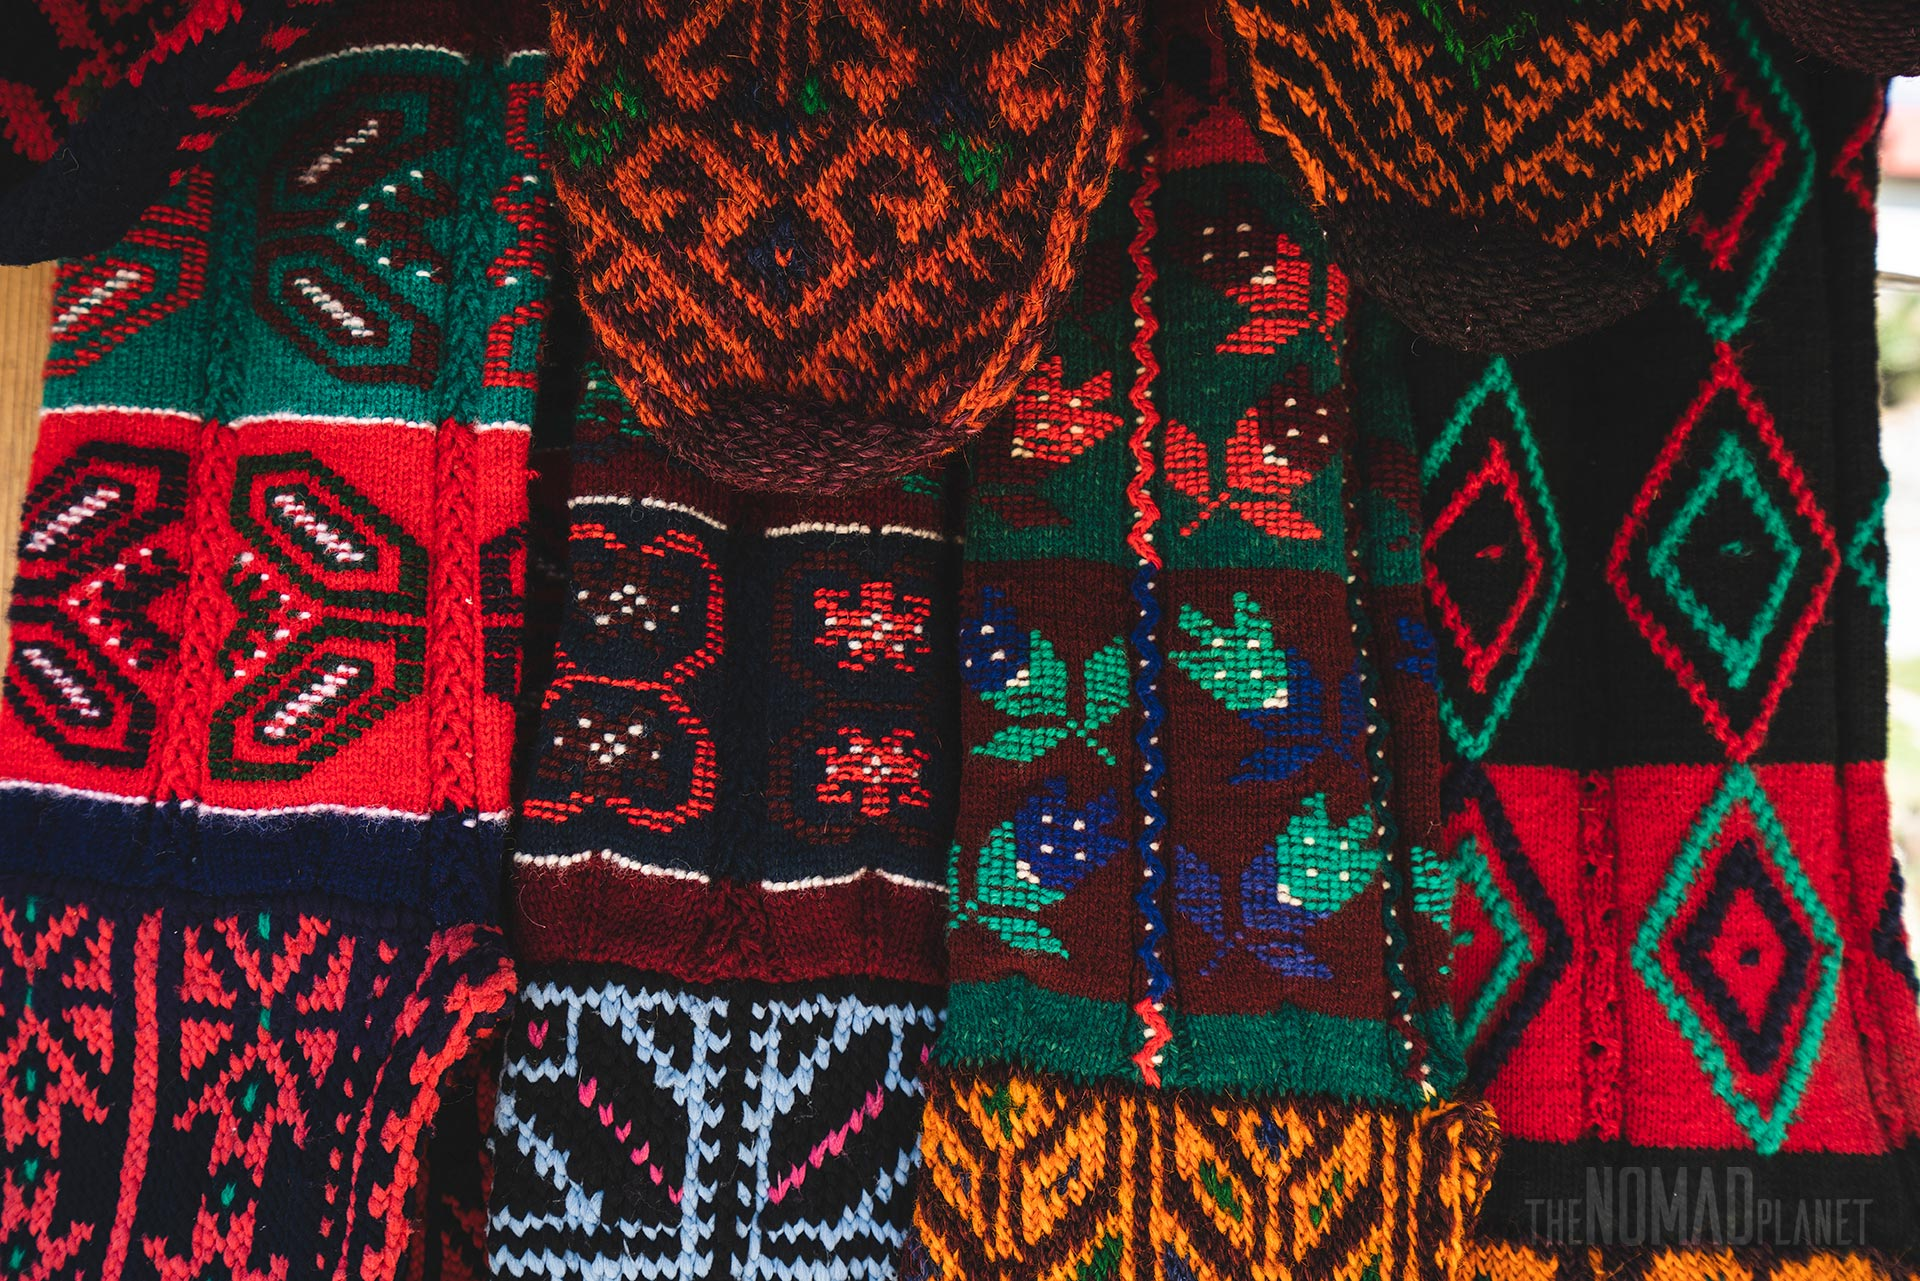 Woolen socks with traditional patterns